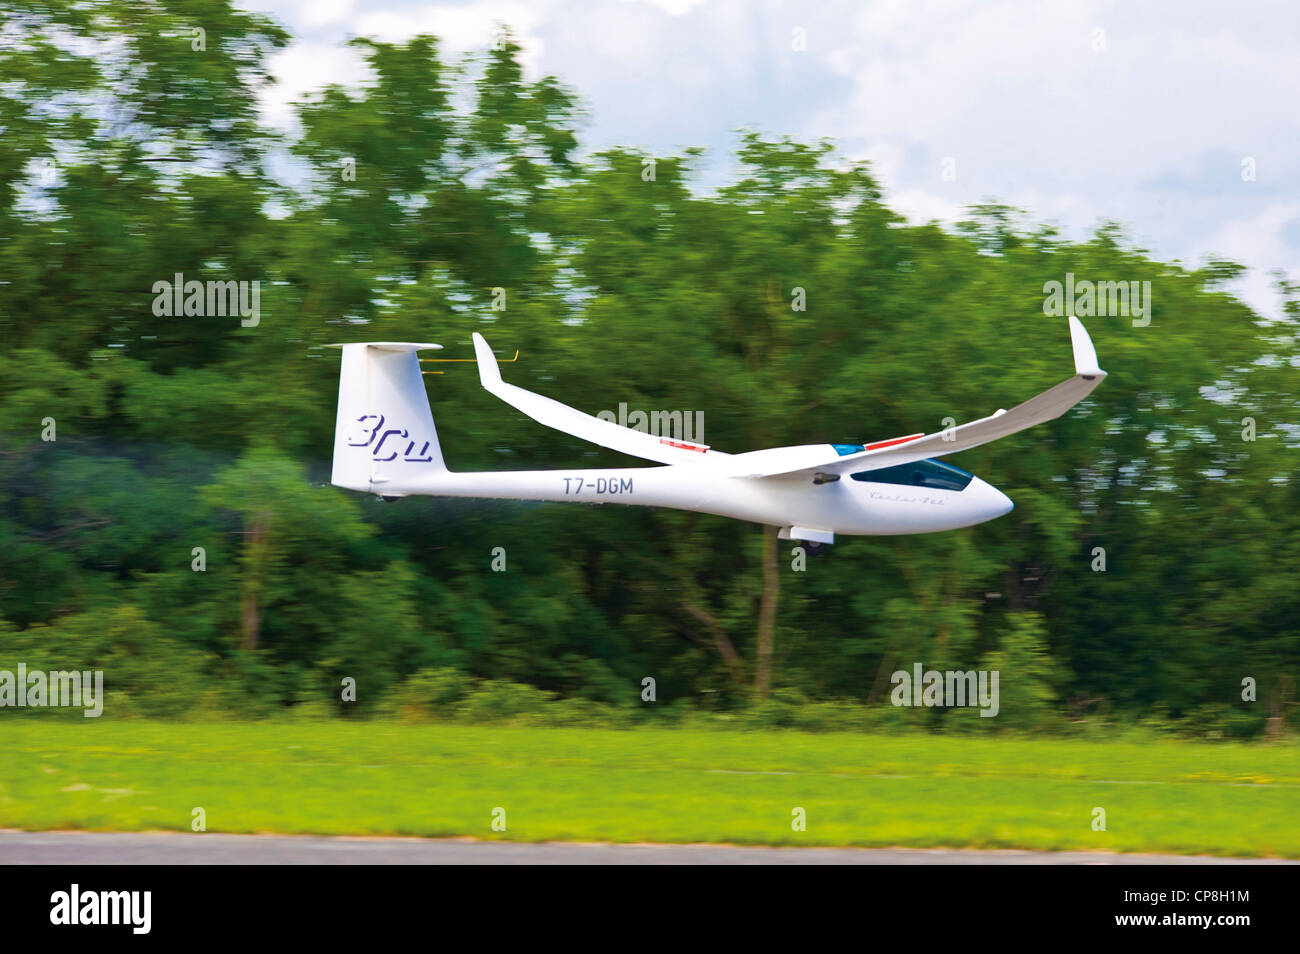 Europe Italy Piedmont Turin  airport of Collegno Word Air Games 2009 glider - Stock Image